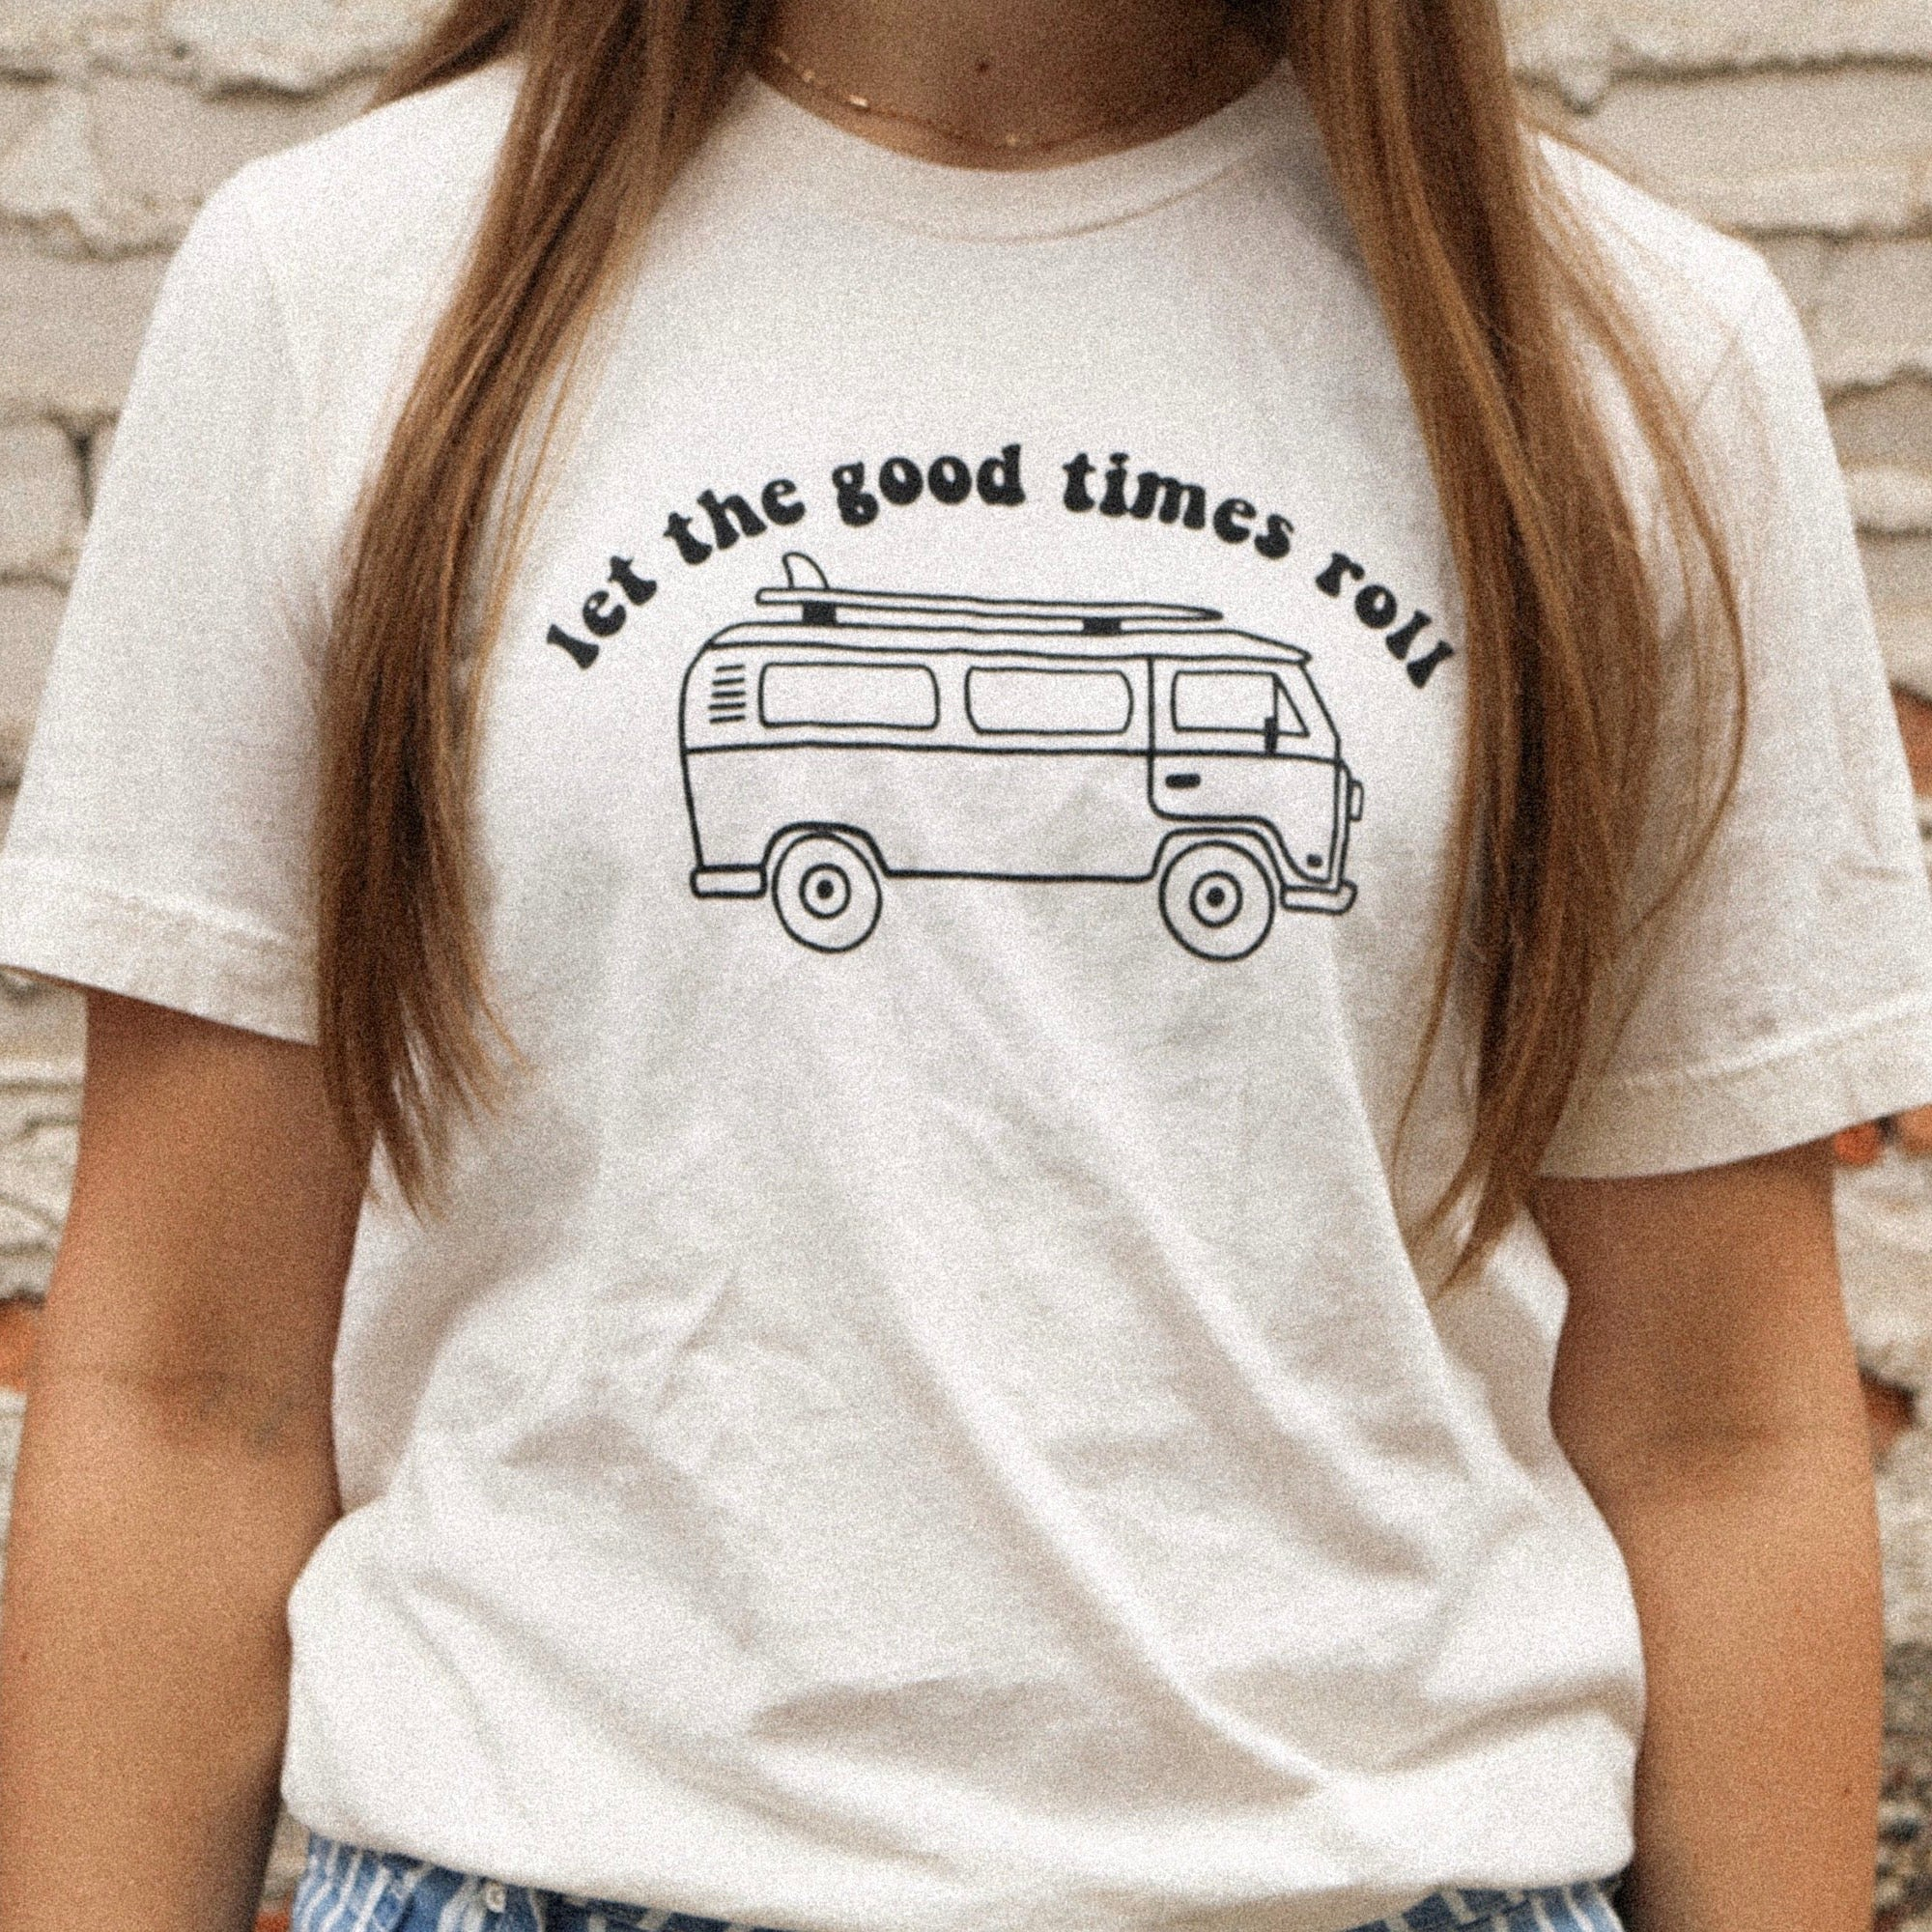 Let The Good Times Roll - Tshirt